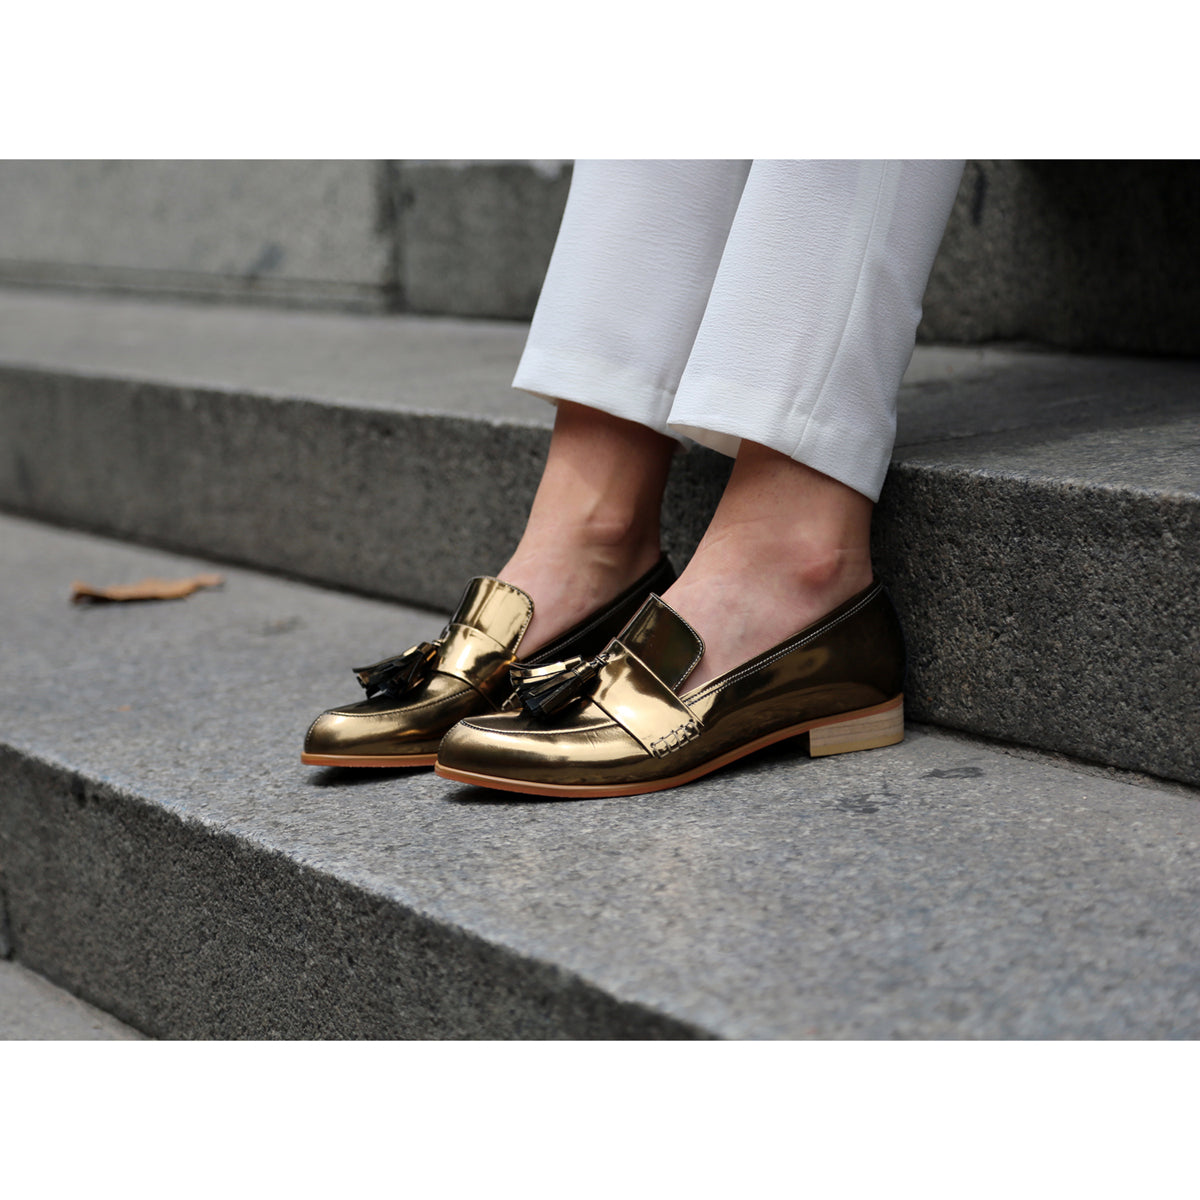 Sarsha Simone wearing EOD by ASHLEY LIM Ecstasy metallic bronze loafers